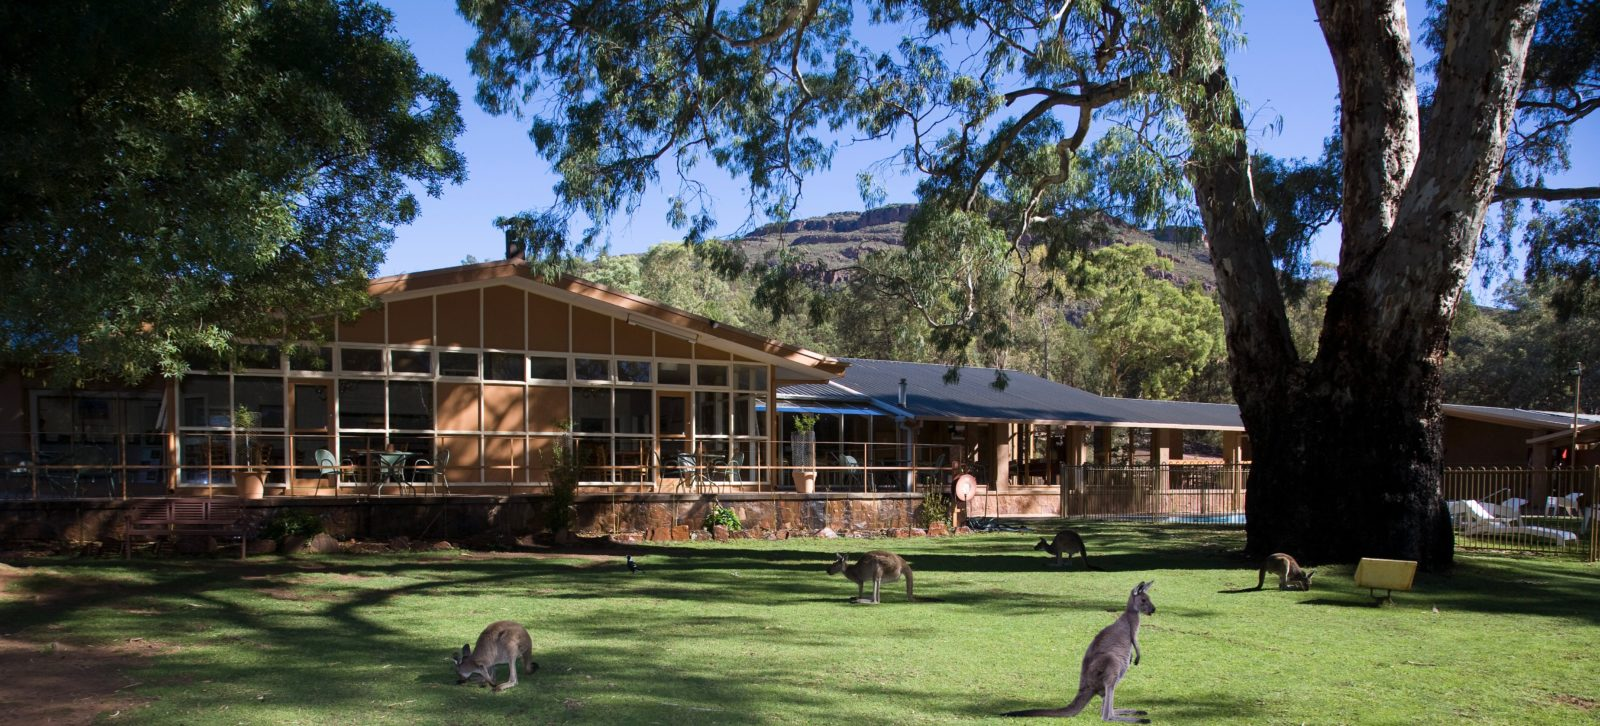 Wilpena Pound Resort - Flinders Ranges, SA